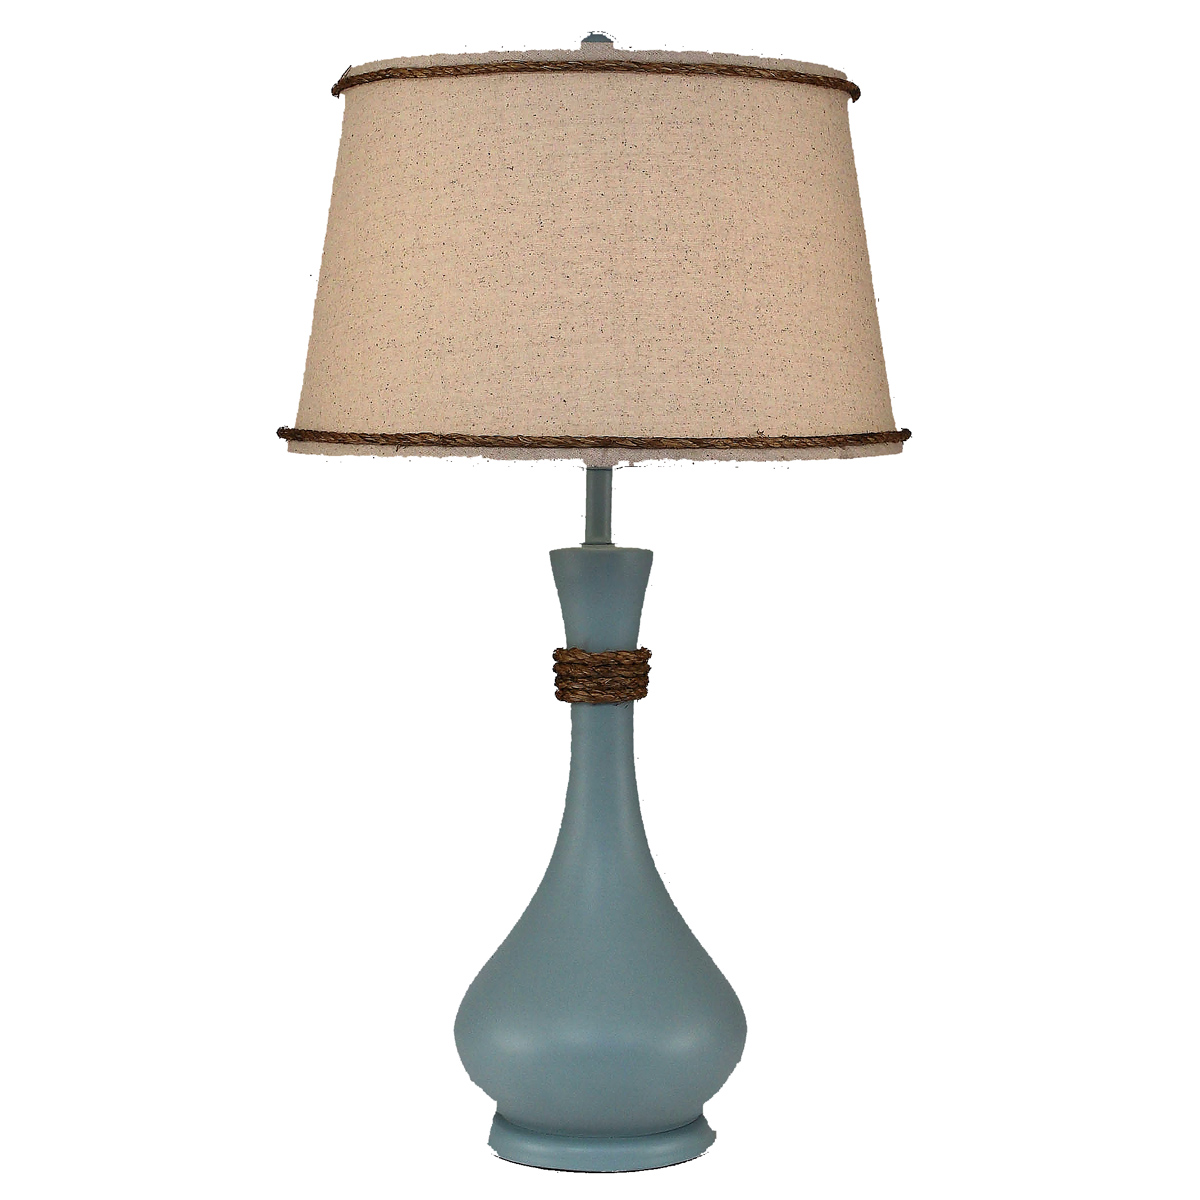 Atlantic Gray Genie Bottle Pot Accent Lamp with Rope